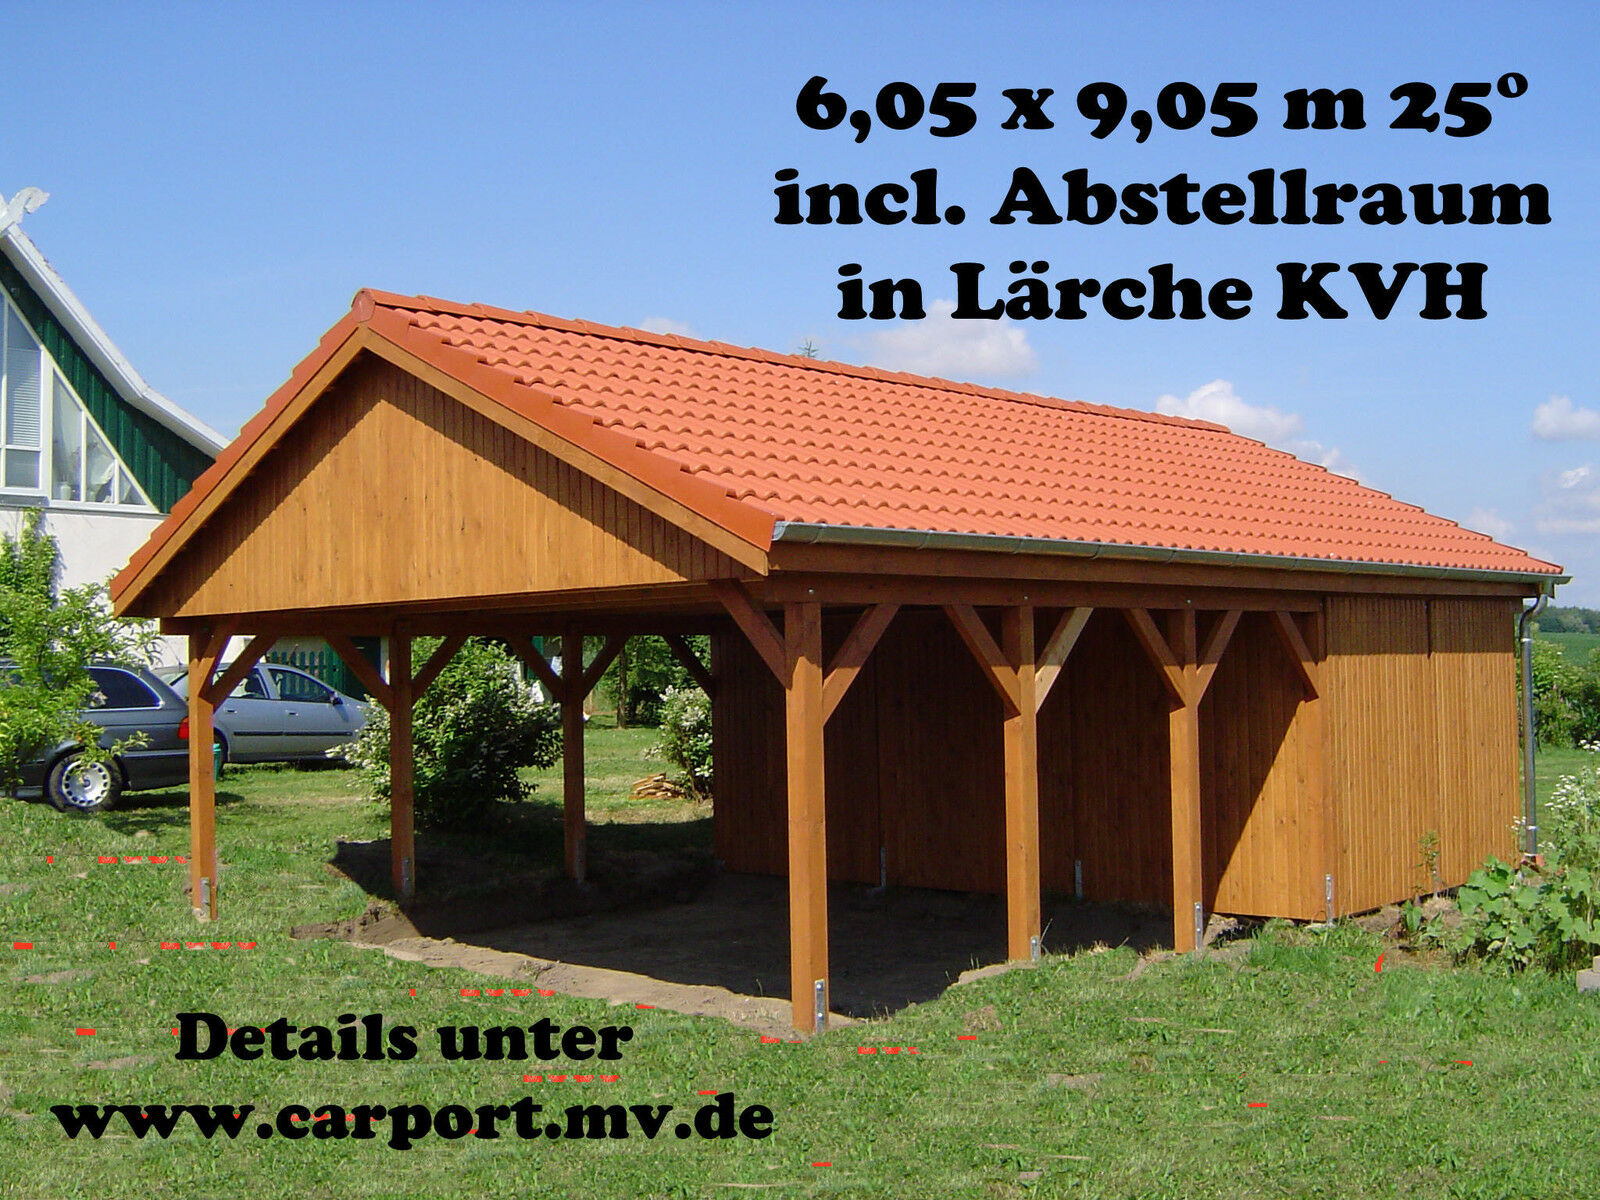 carport 6 00 x 9 00 m satteldach 25 l rche kvh doppelcarport einzelcarport top eur. Black Bedroom Furniture Sets. Home Design Ideas